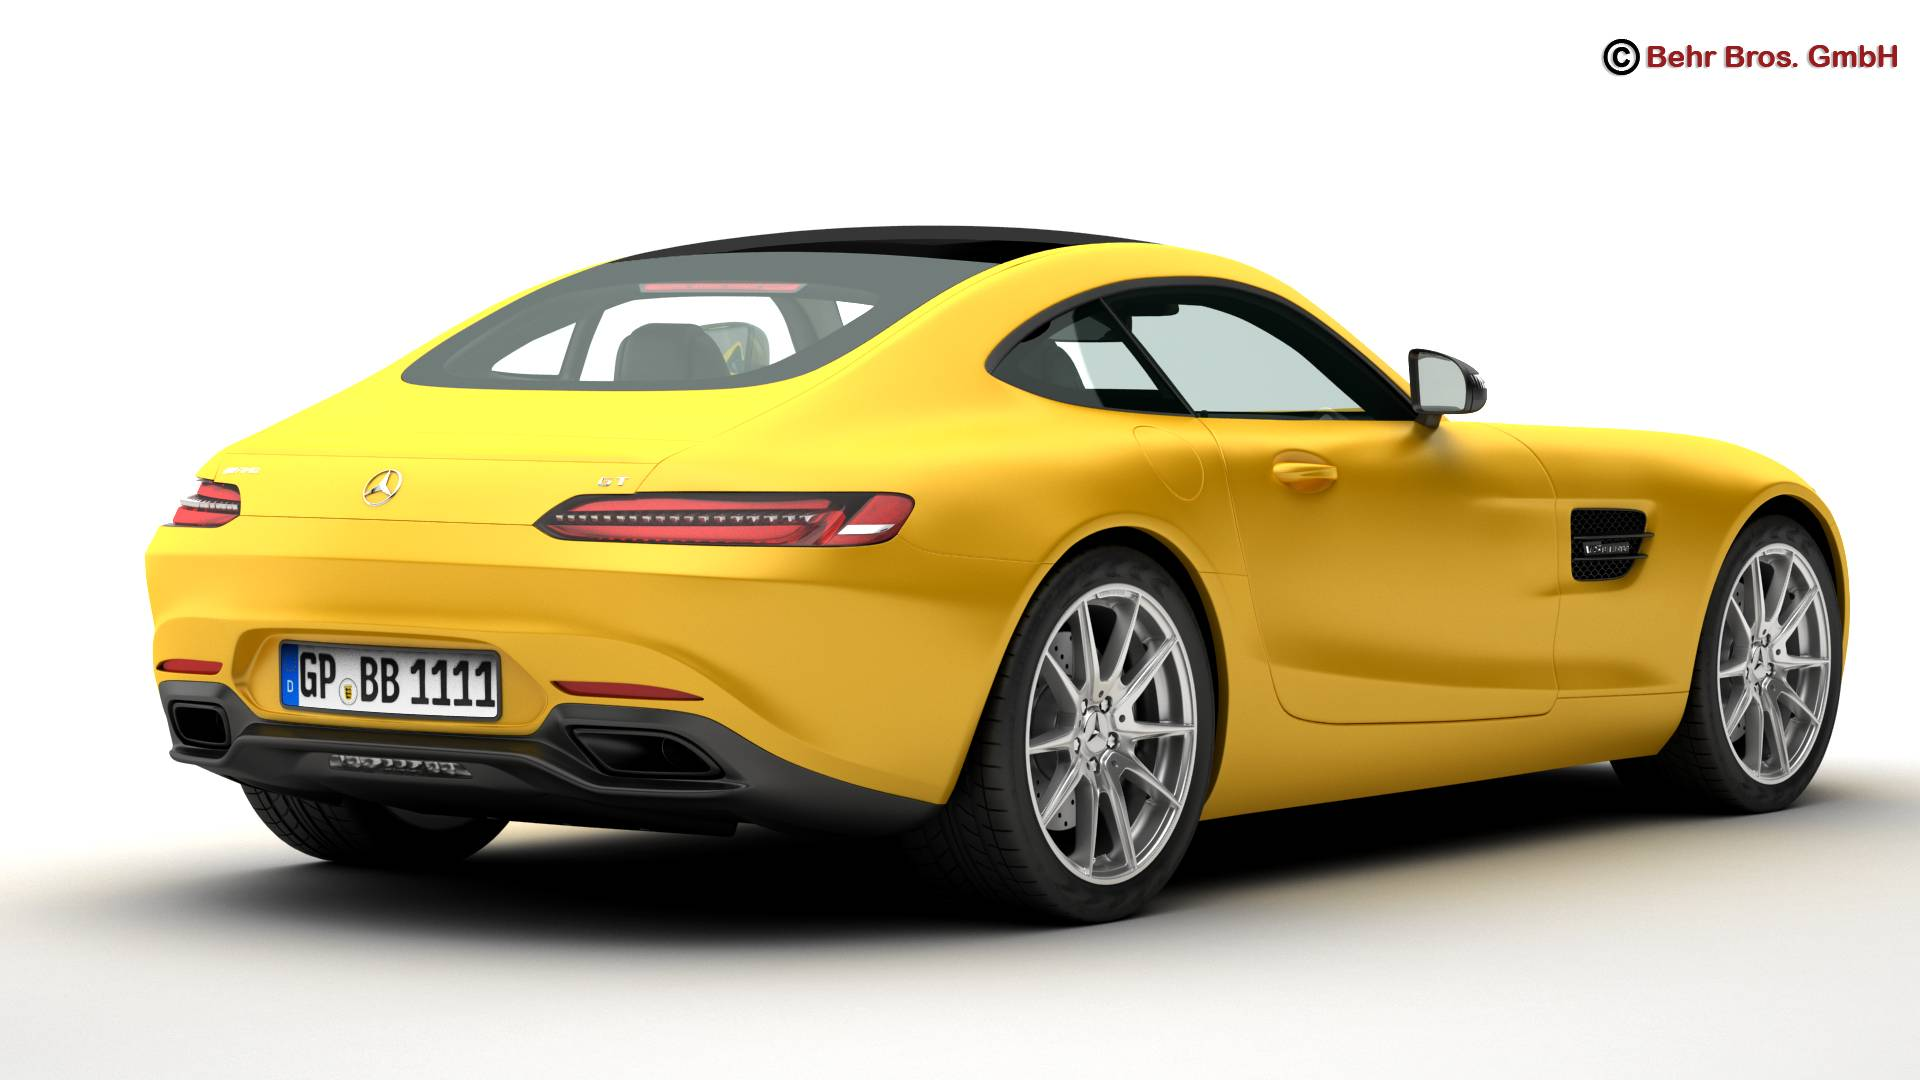 mercedes amg gt 2015 eu and us version 3d model 3ds max fbx c4d lwo ma mb obj 210115